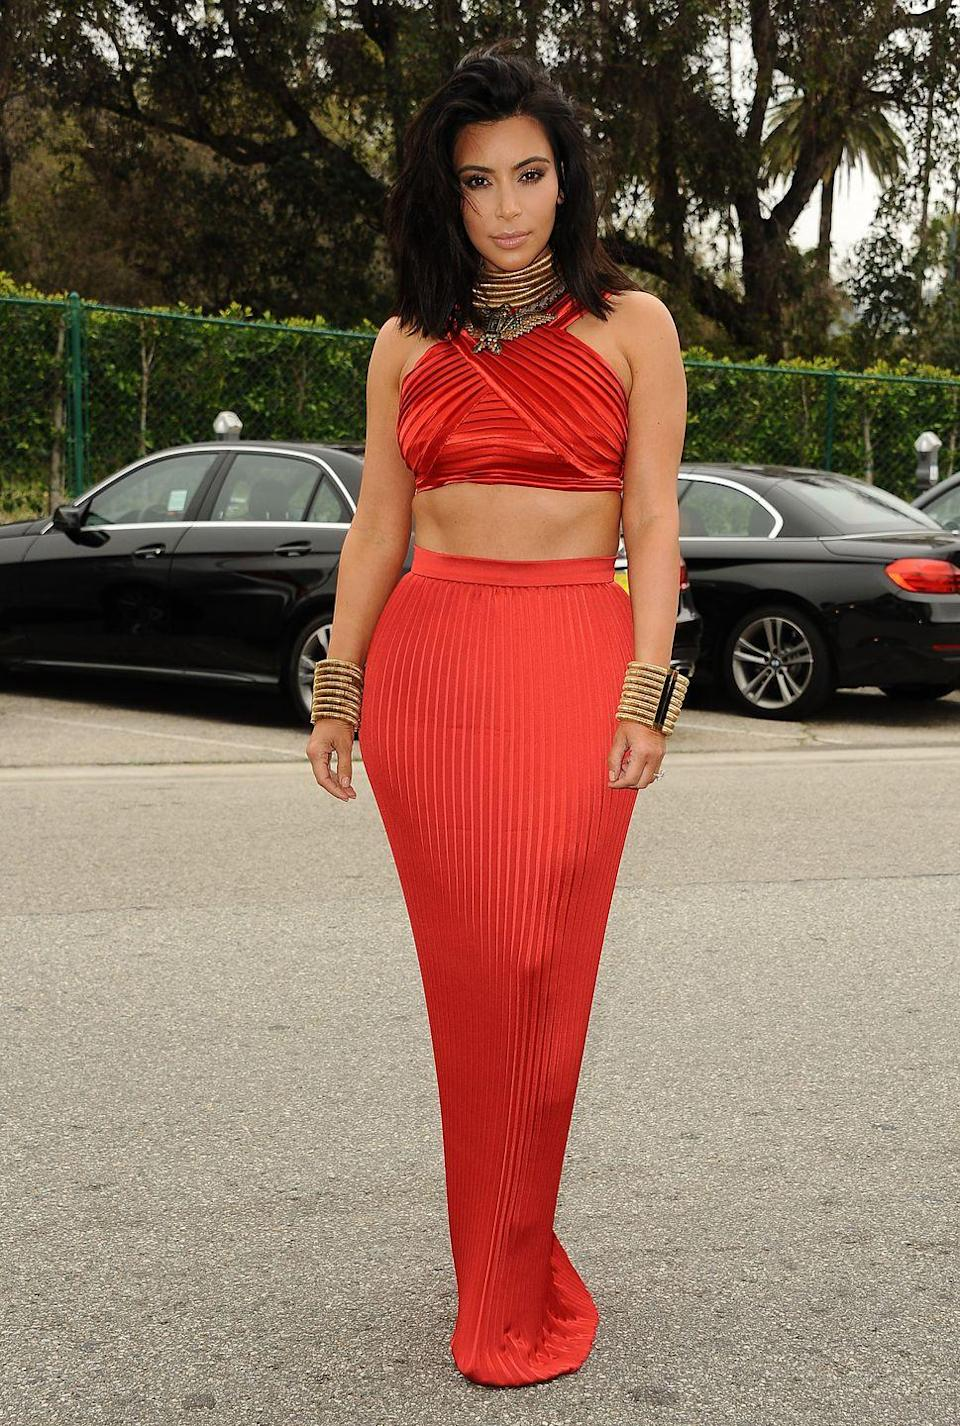 <p>It probably wasn't intentional, but the red crop top and skirt combo Kim Kardashian wore in 2015 reminds us so much of Jasmine's red outfit that we have to wonder...</p>